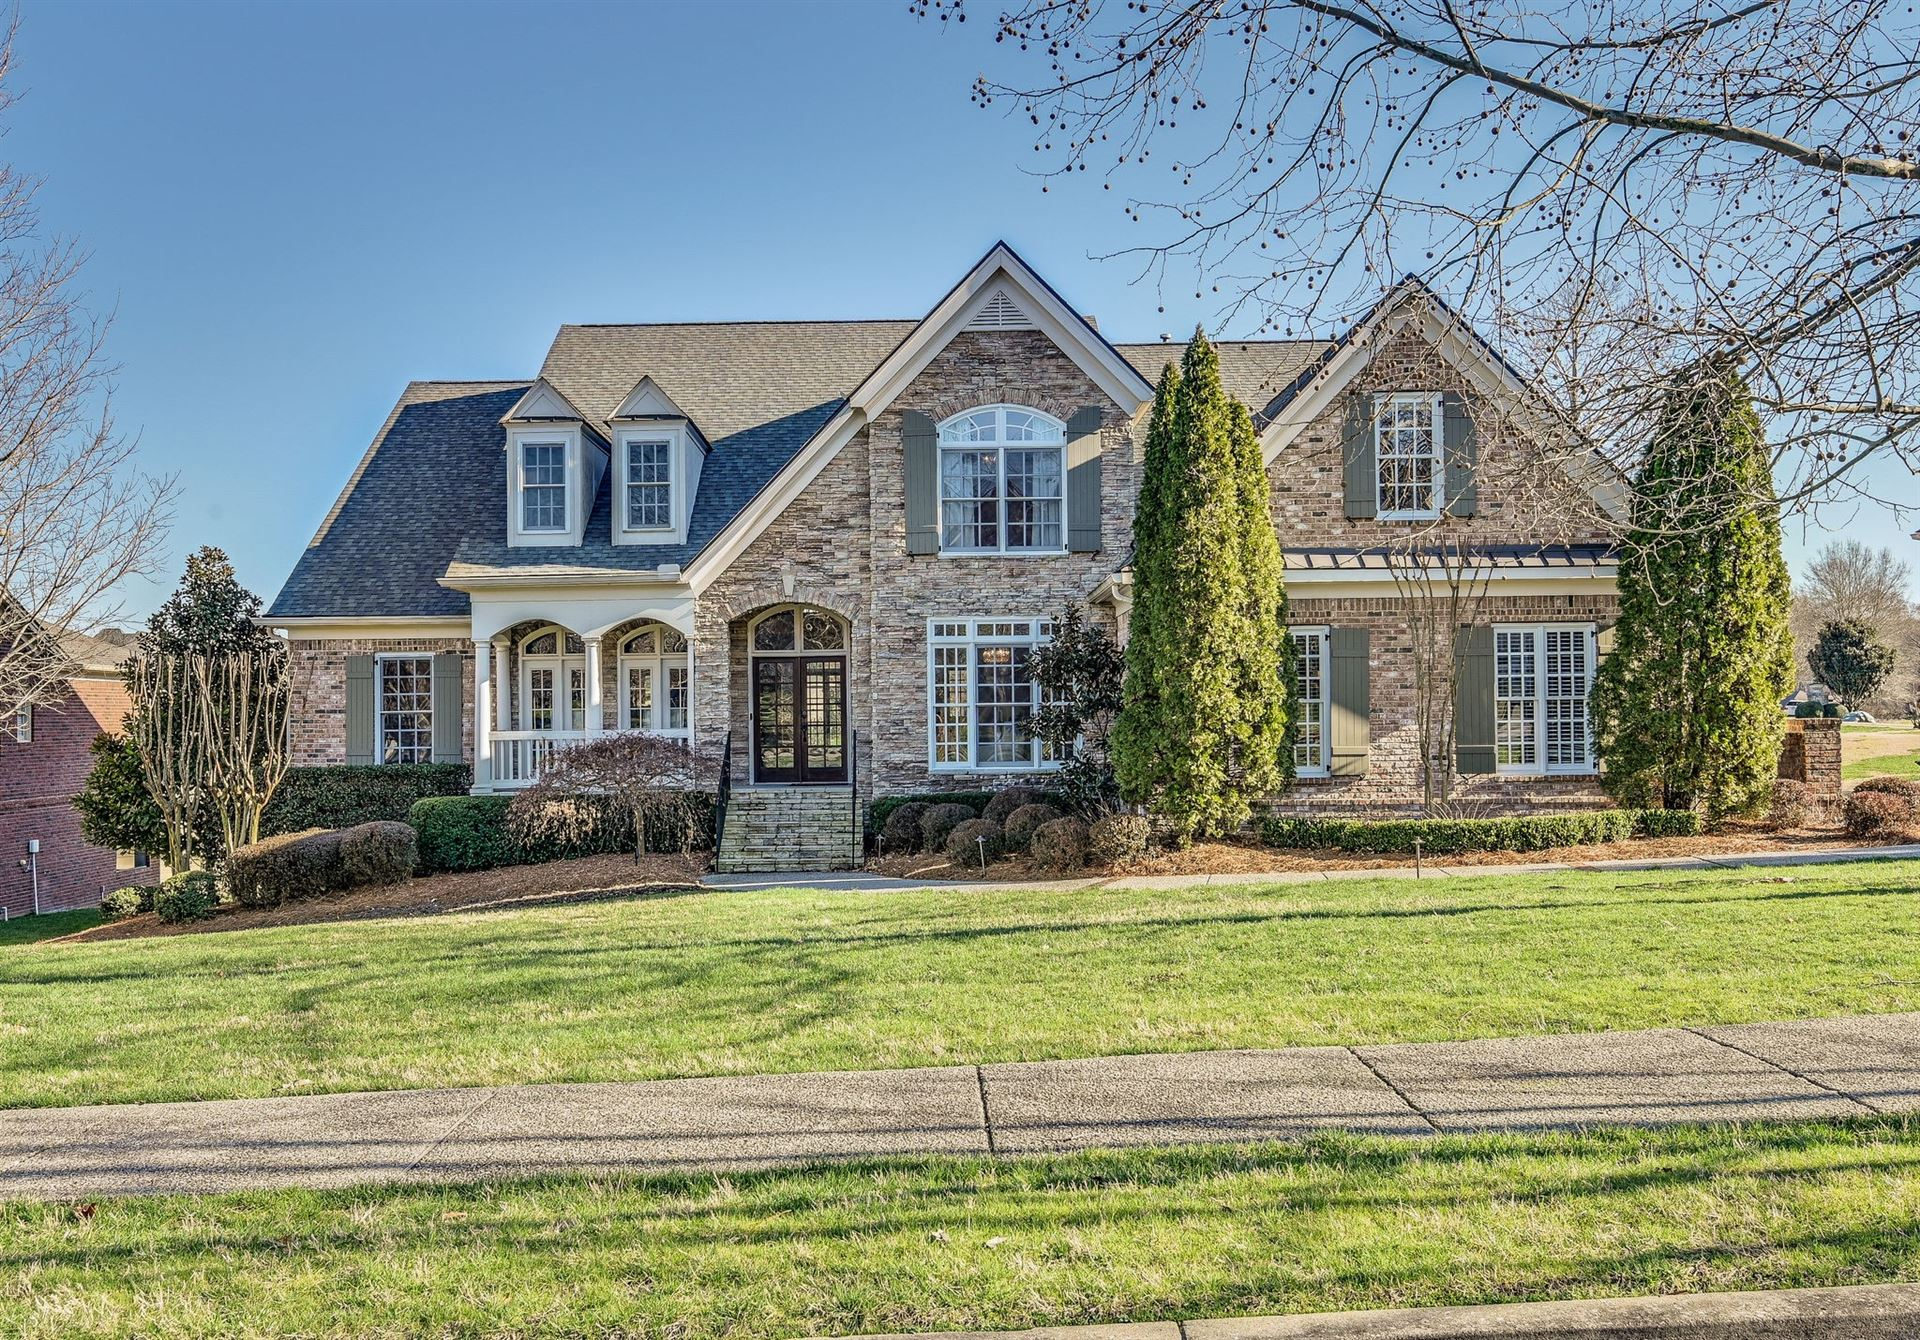 16 Angel Trce, Brentwood, TN 37027 - MLS#: 2123406